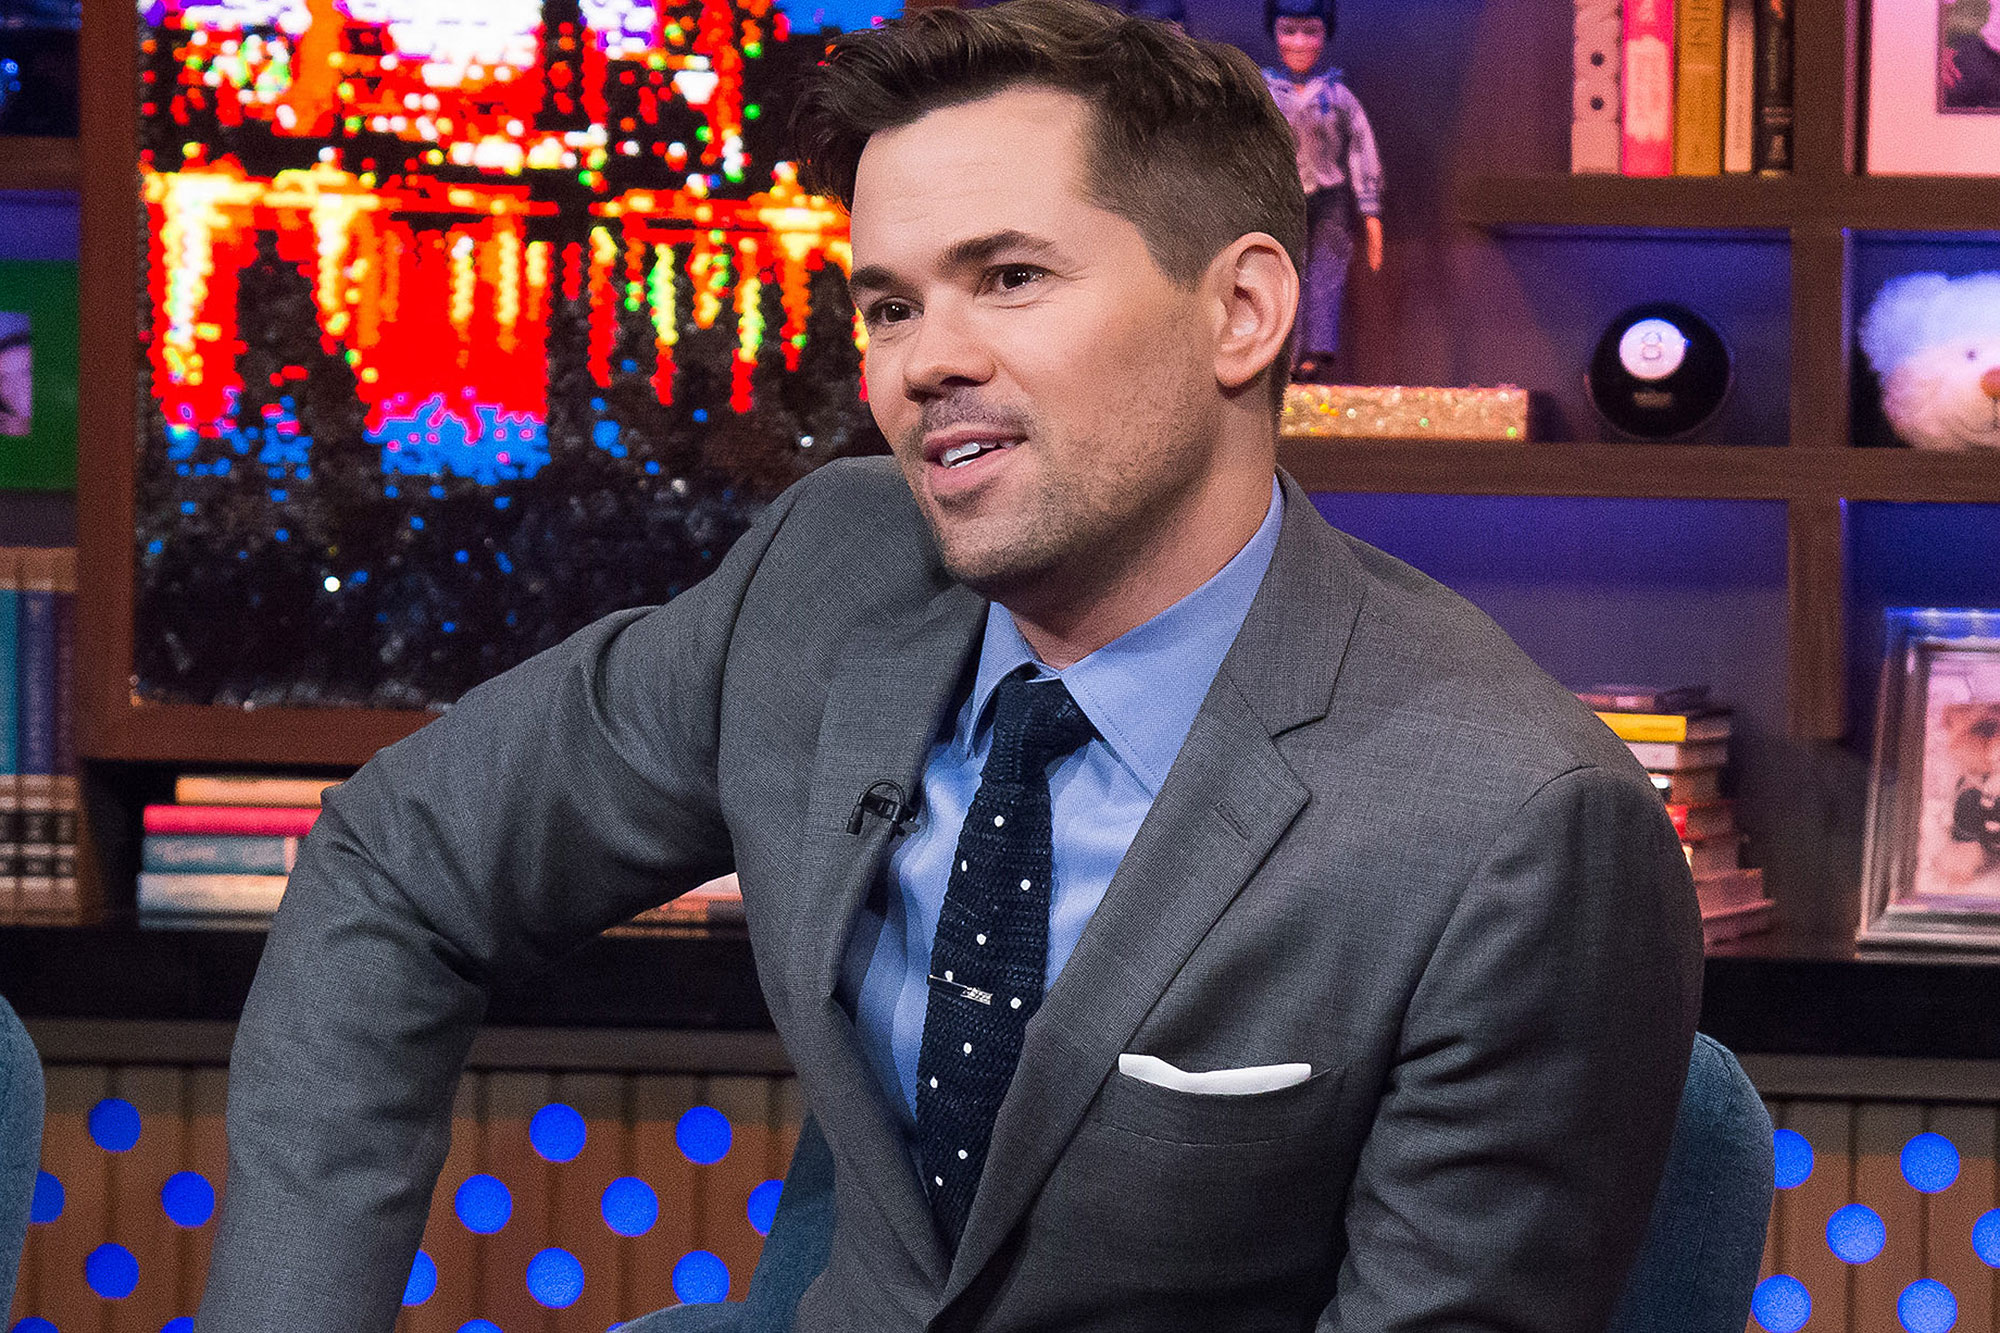 WATCH WHAT HAPPENS LIVE WITH ANDY COHEN -- Episode 14023 -- Pictured: Andrew Rannells -- (Photo by: Charles Sykes/Bravo)